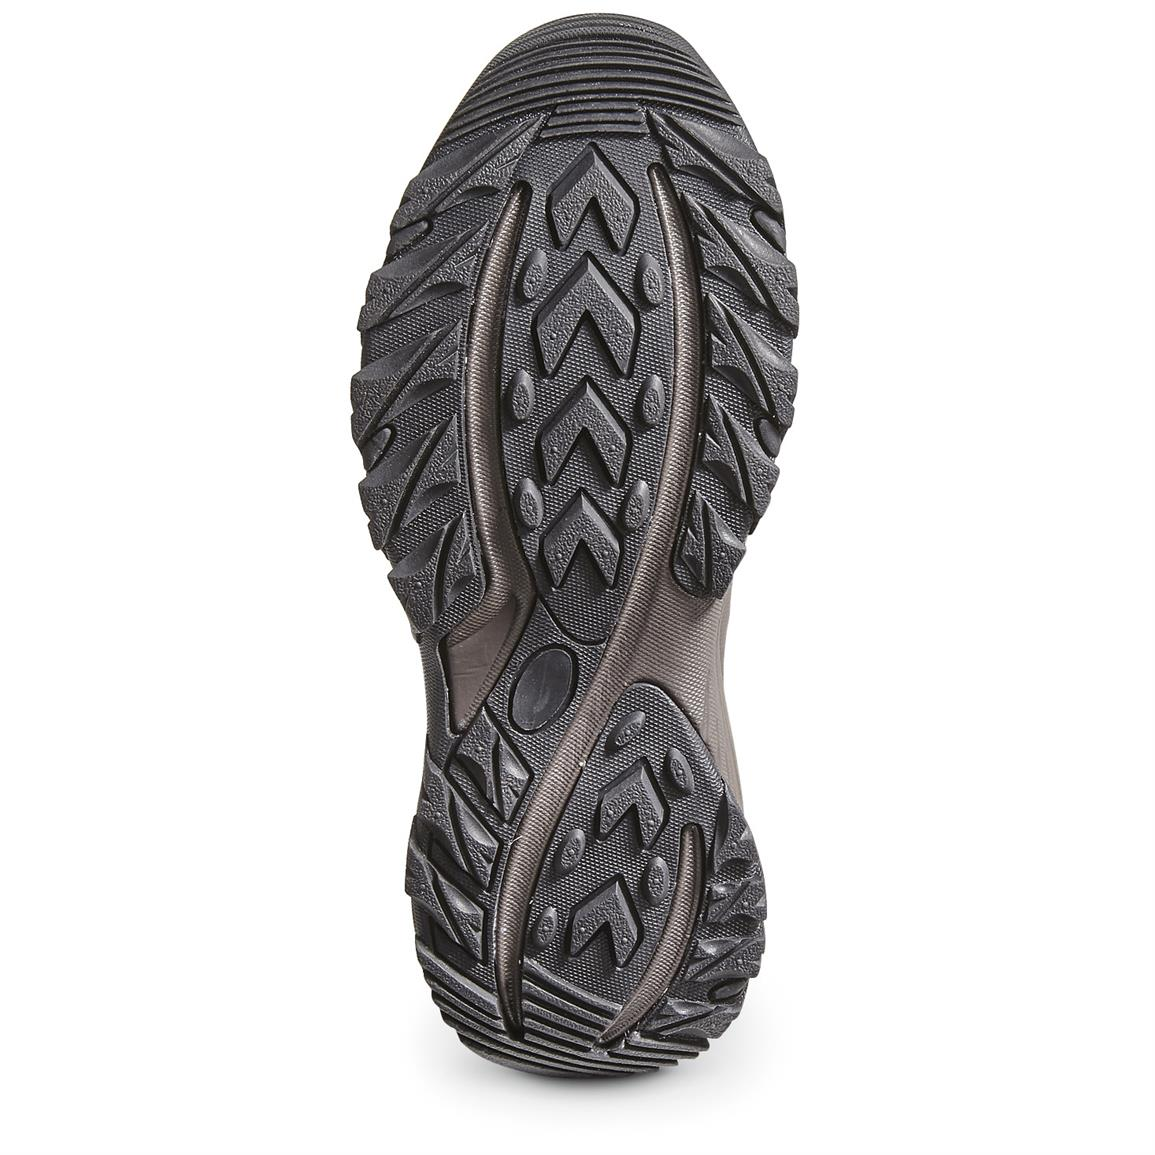 Features a more durable outsole for indoors or out